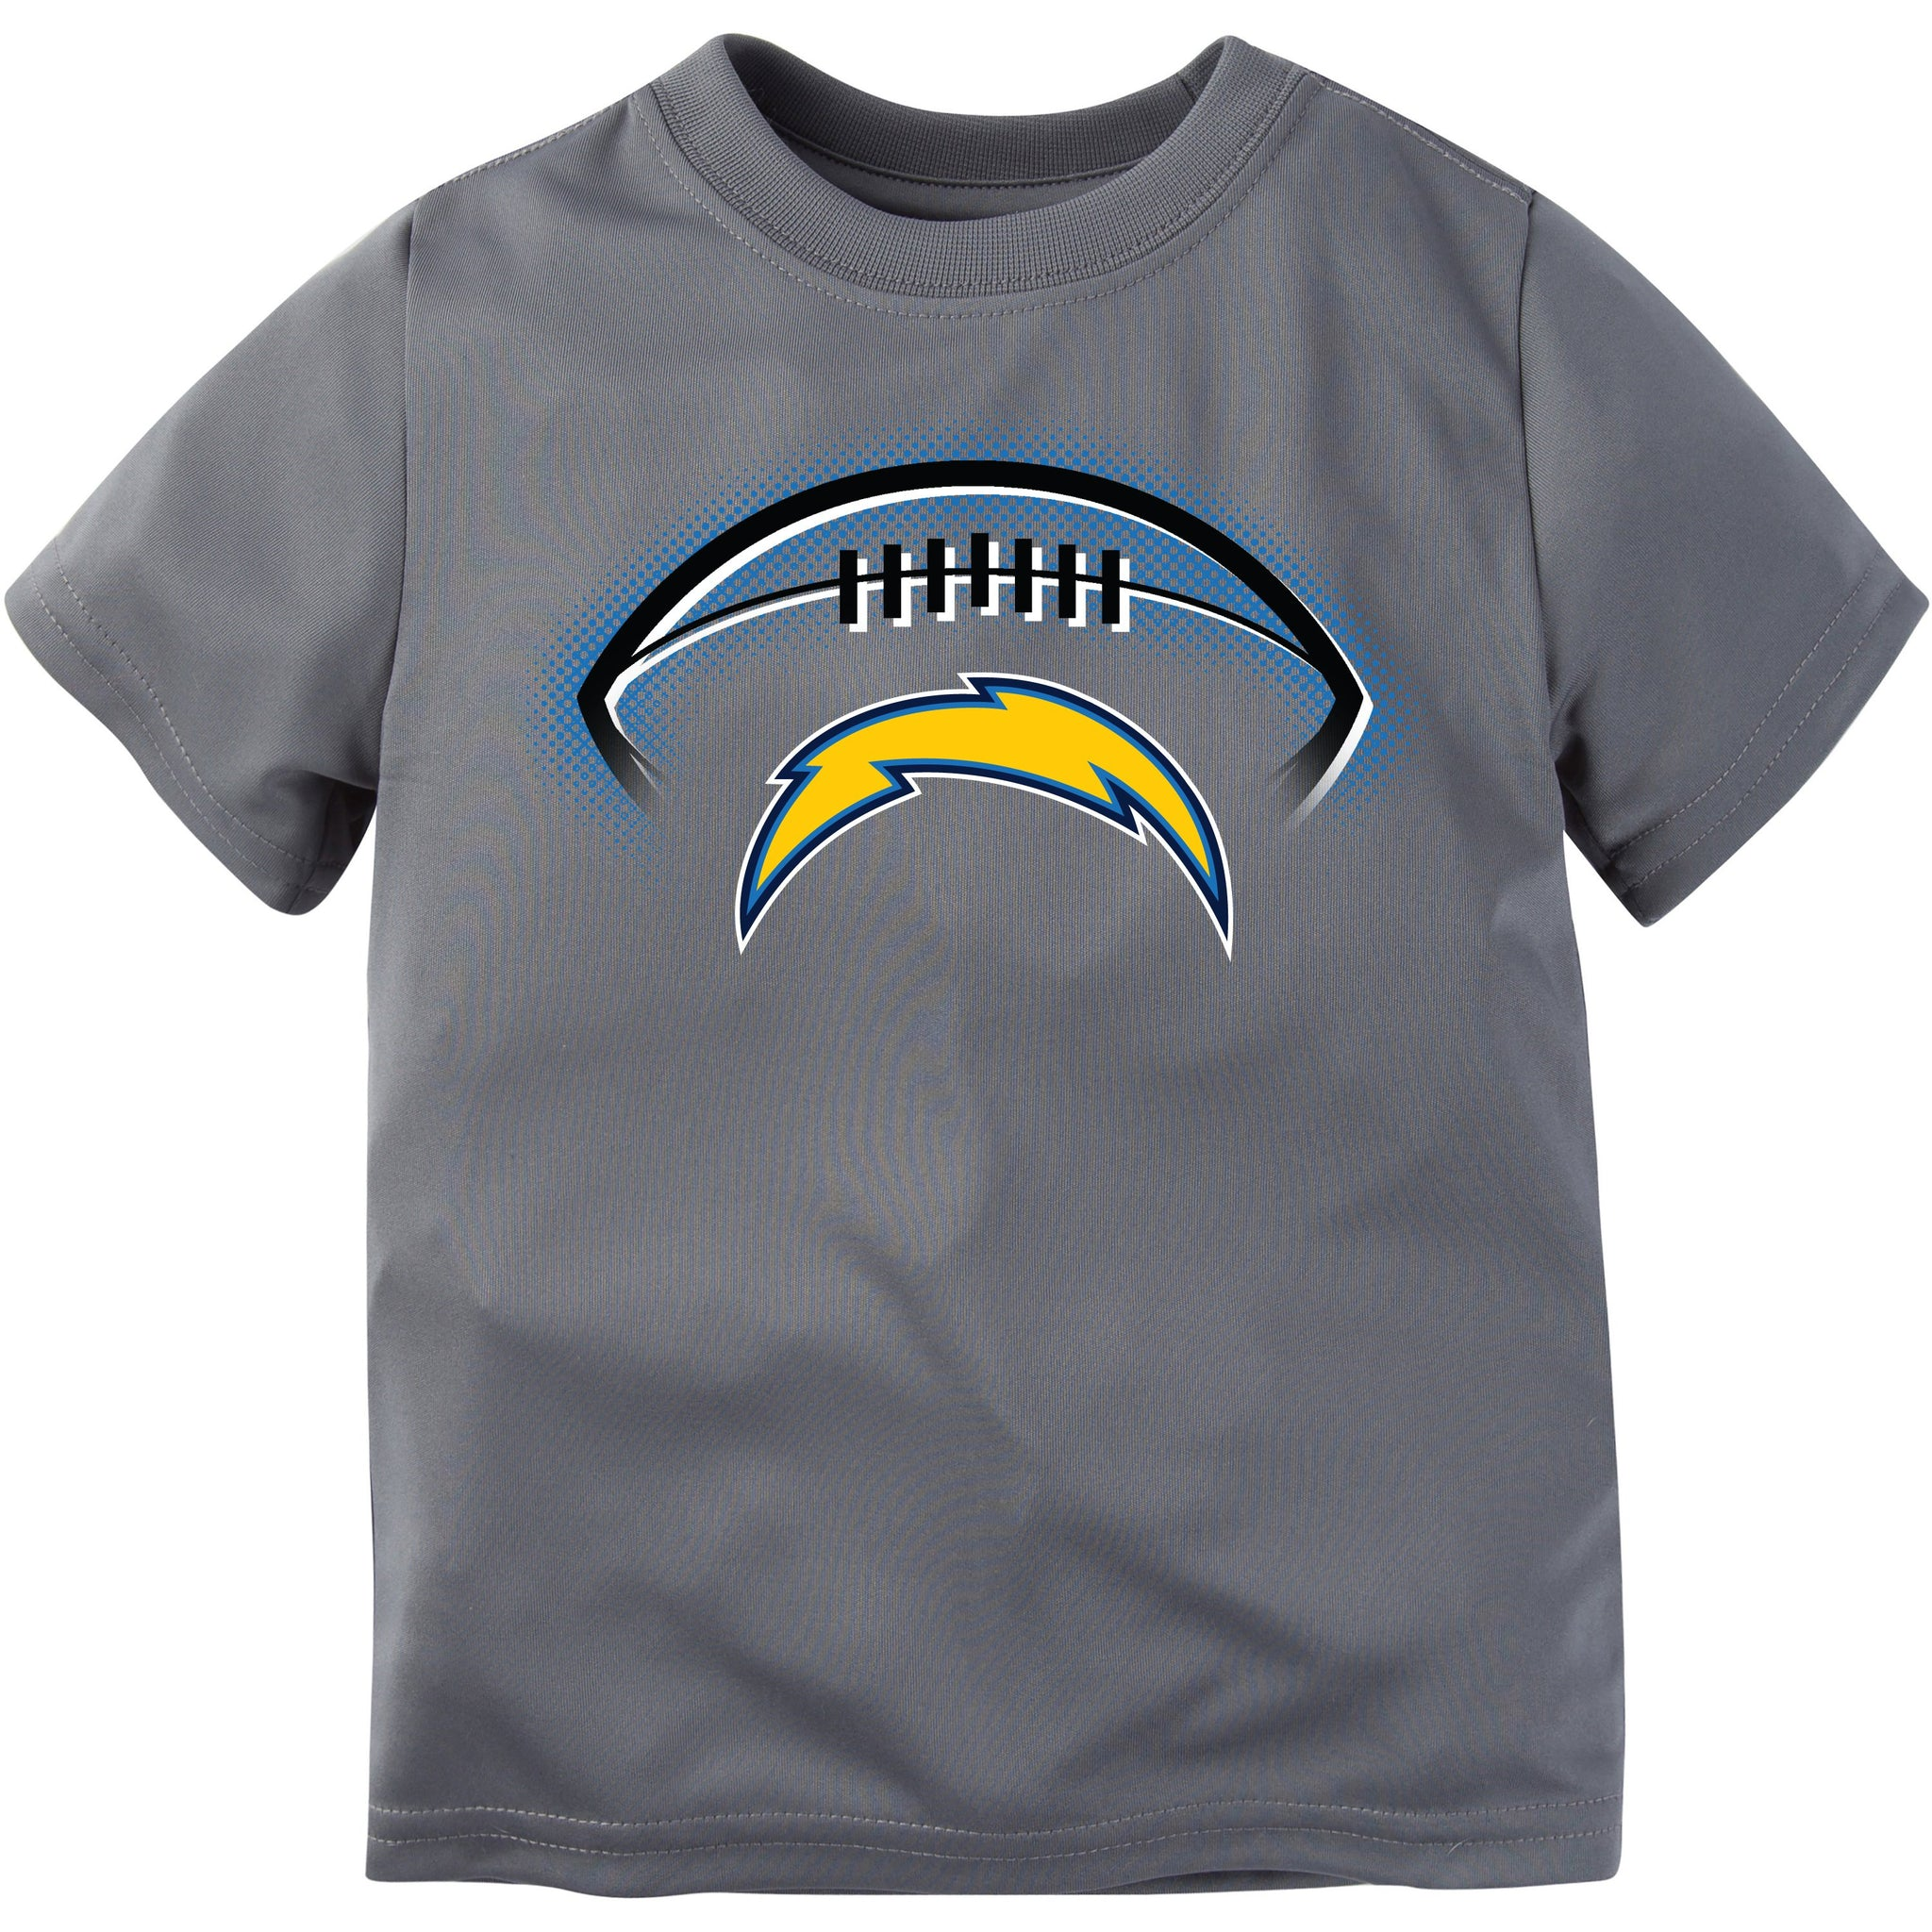 LA Chargers Boys Short Sleeve Tee-Gerber Childrenswear